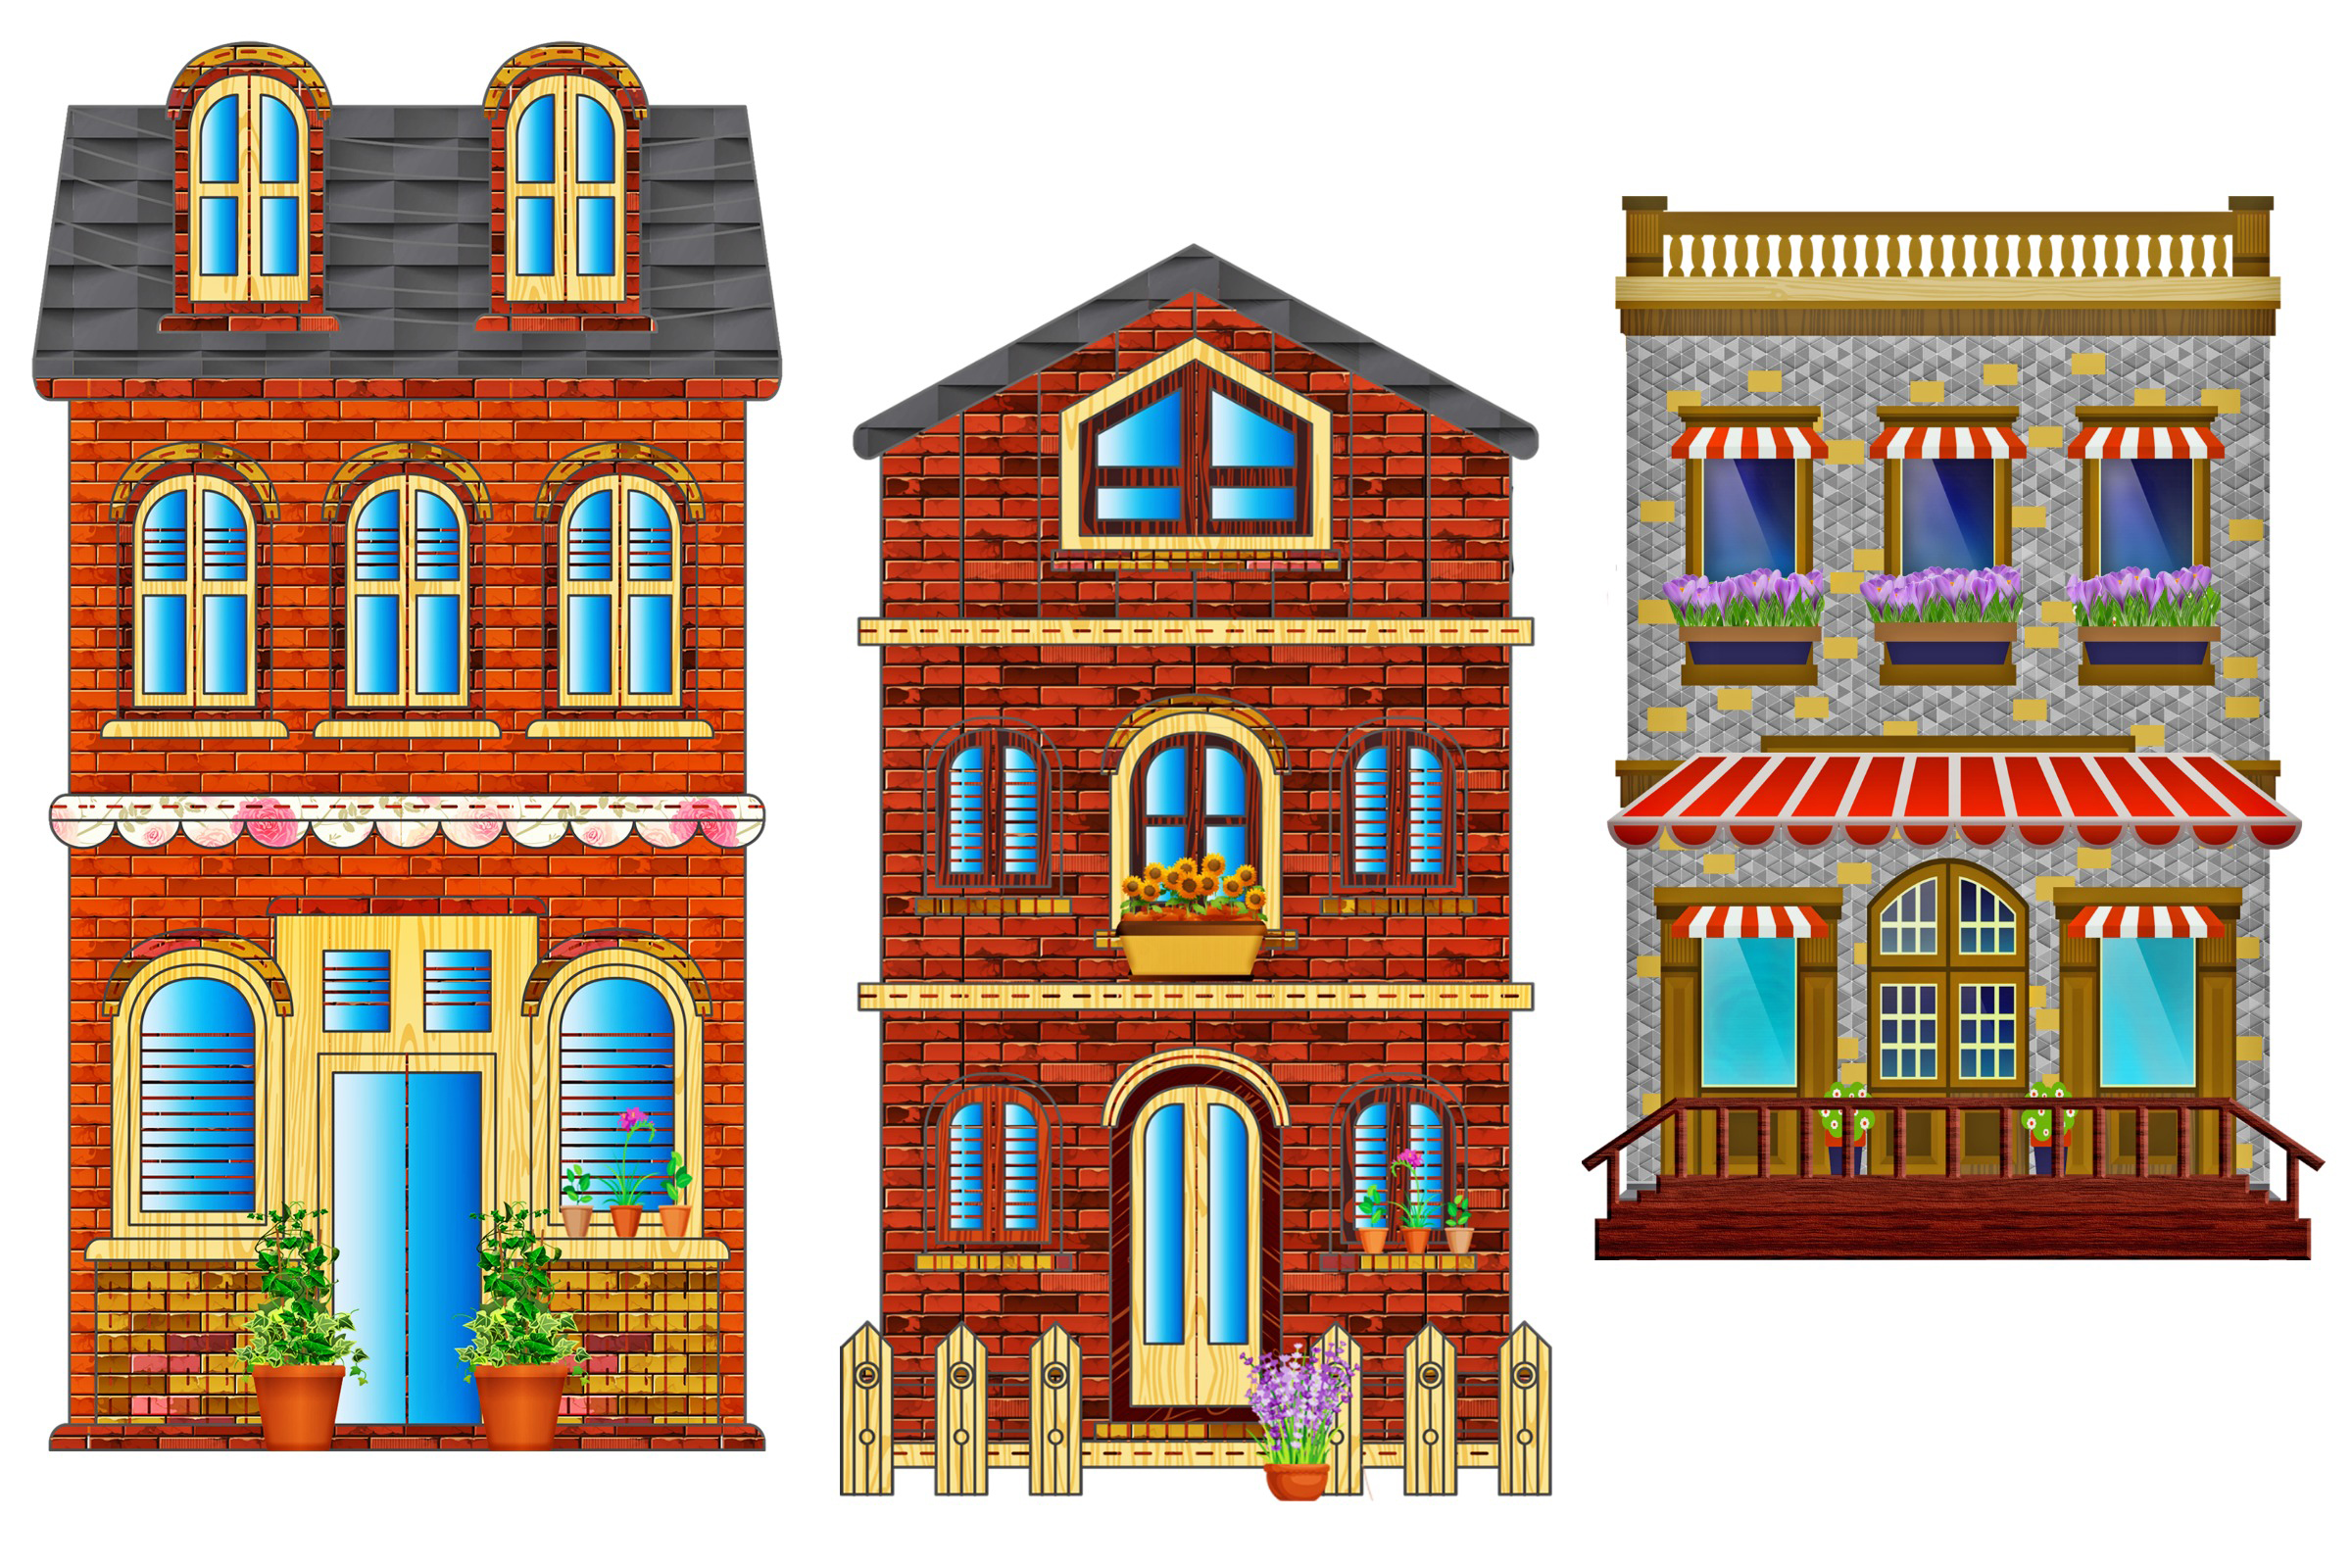 Wood Brick Stone Buildings and House Clip Art (2400 x 1600 Pixel)